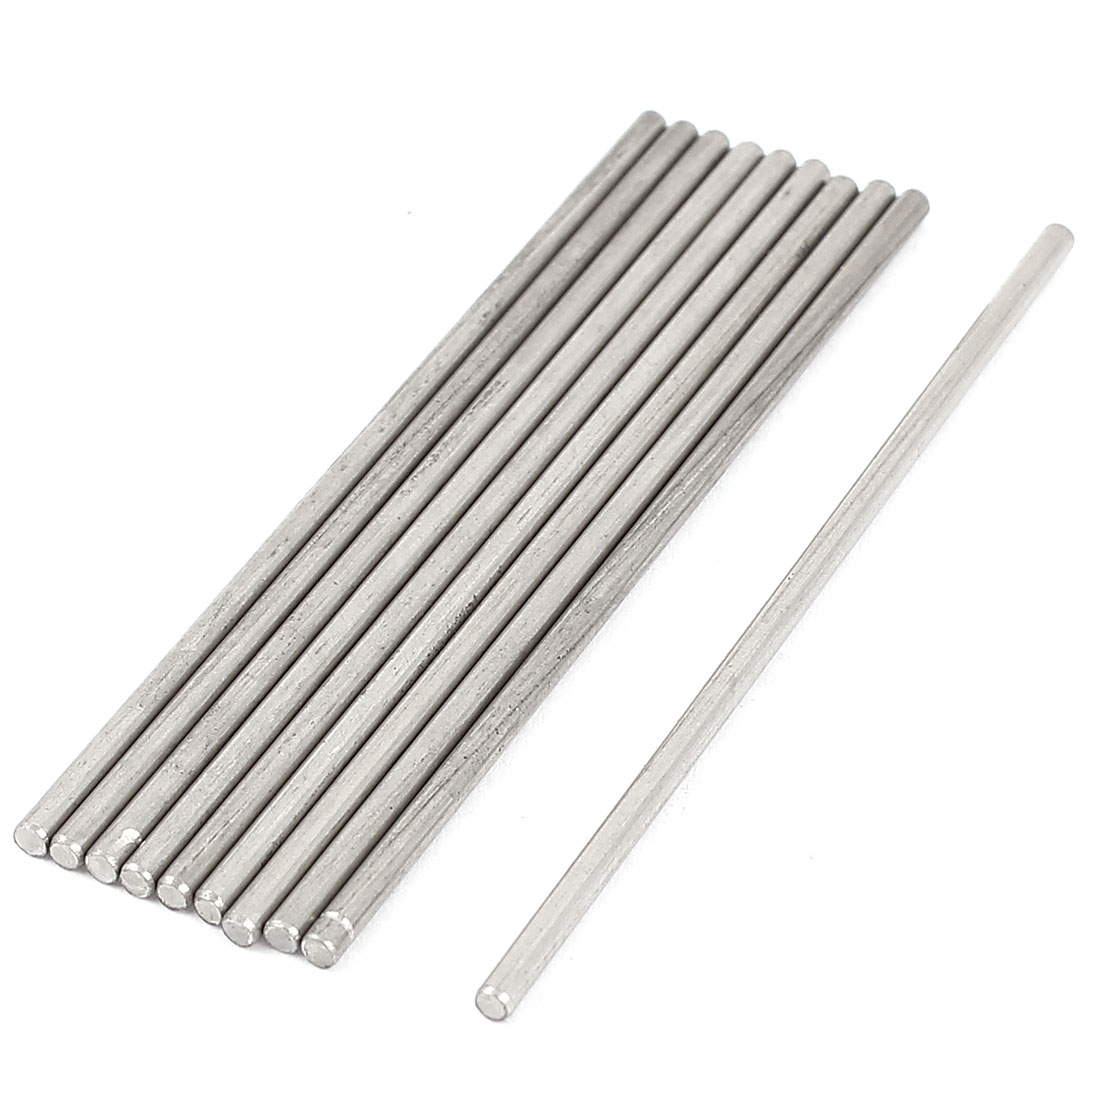 RC Aircraft Car Parts 2mm Shaft Dia 160mm Length Stainless Steel Round Rod 10Pcs